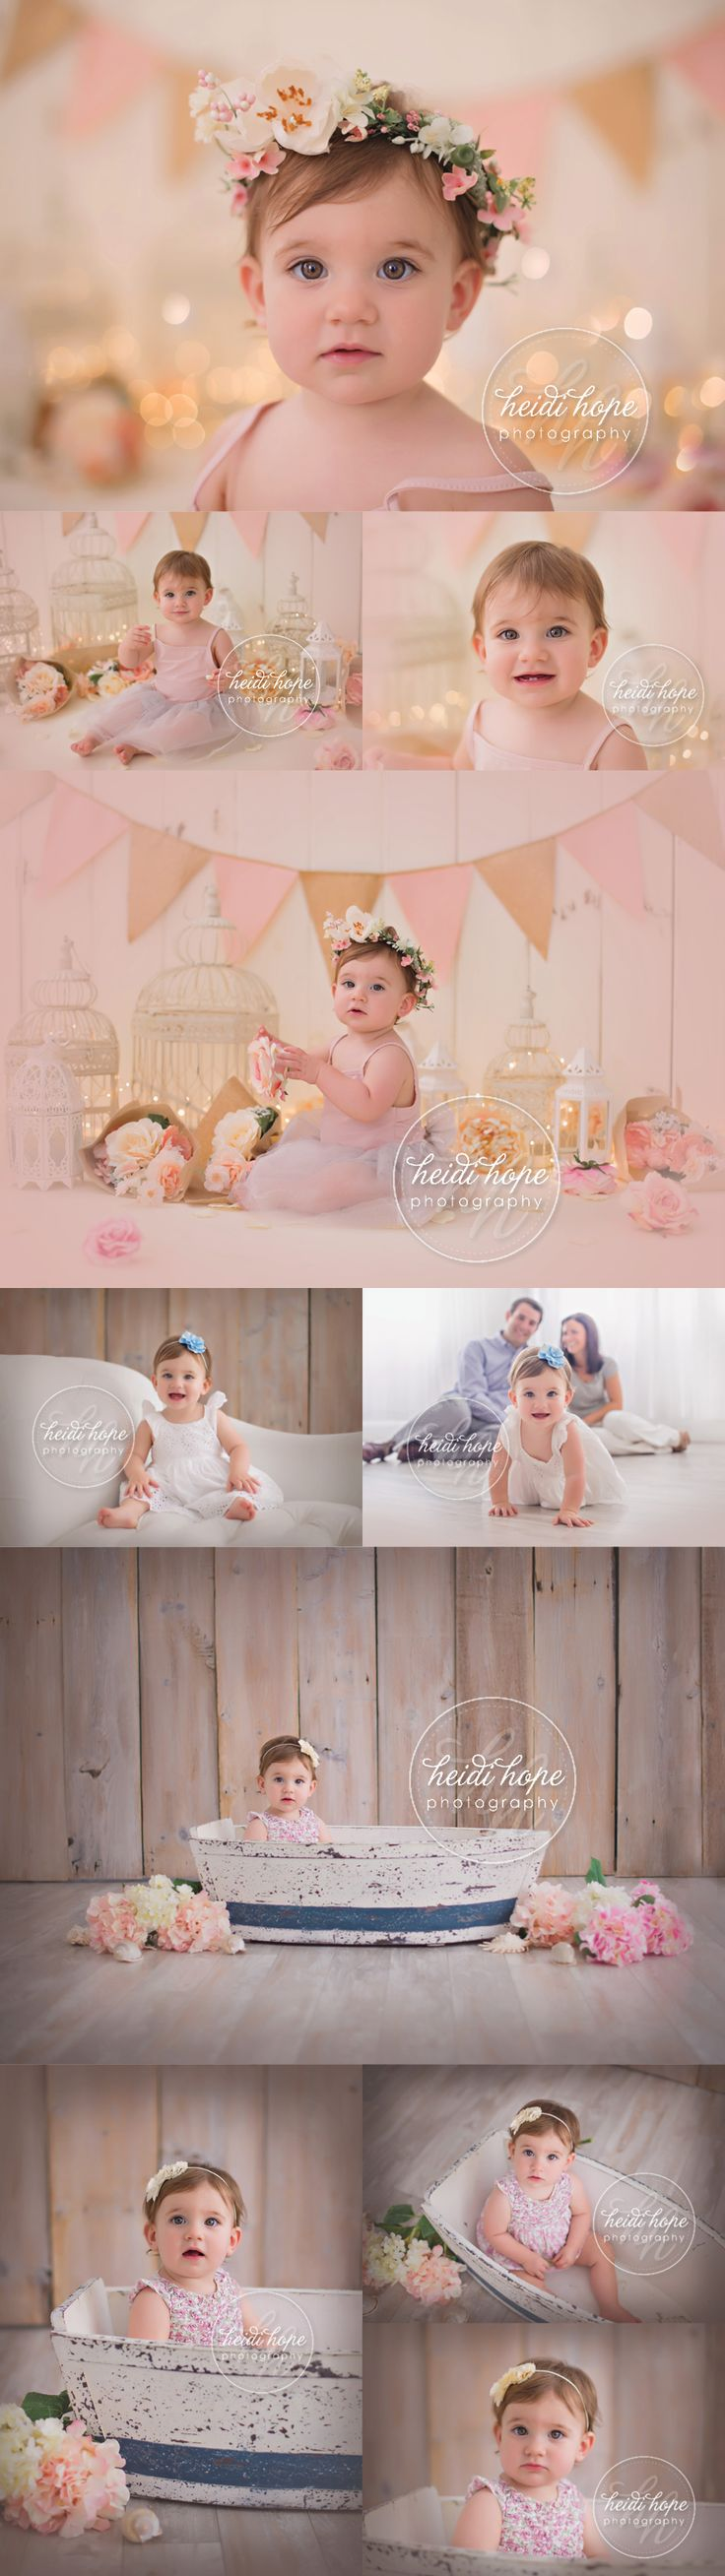 Blog | Heidi Hope Photography